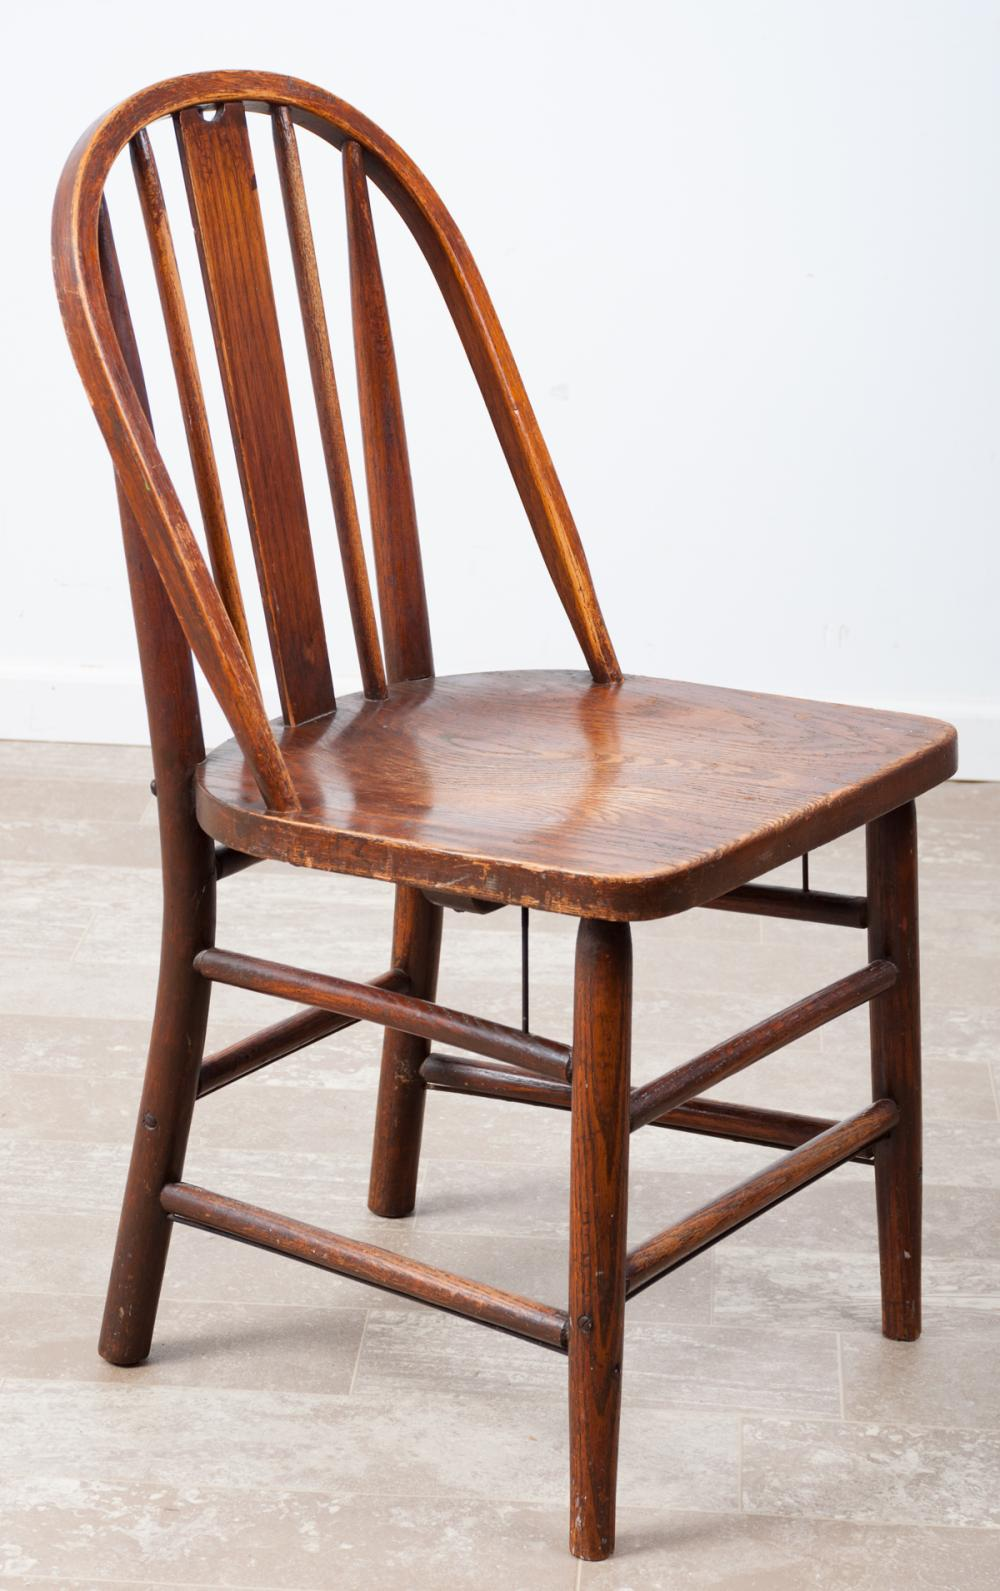 Marietta Chair Co. Oak Windsor Chair